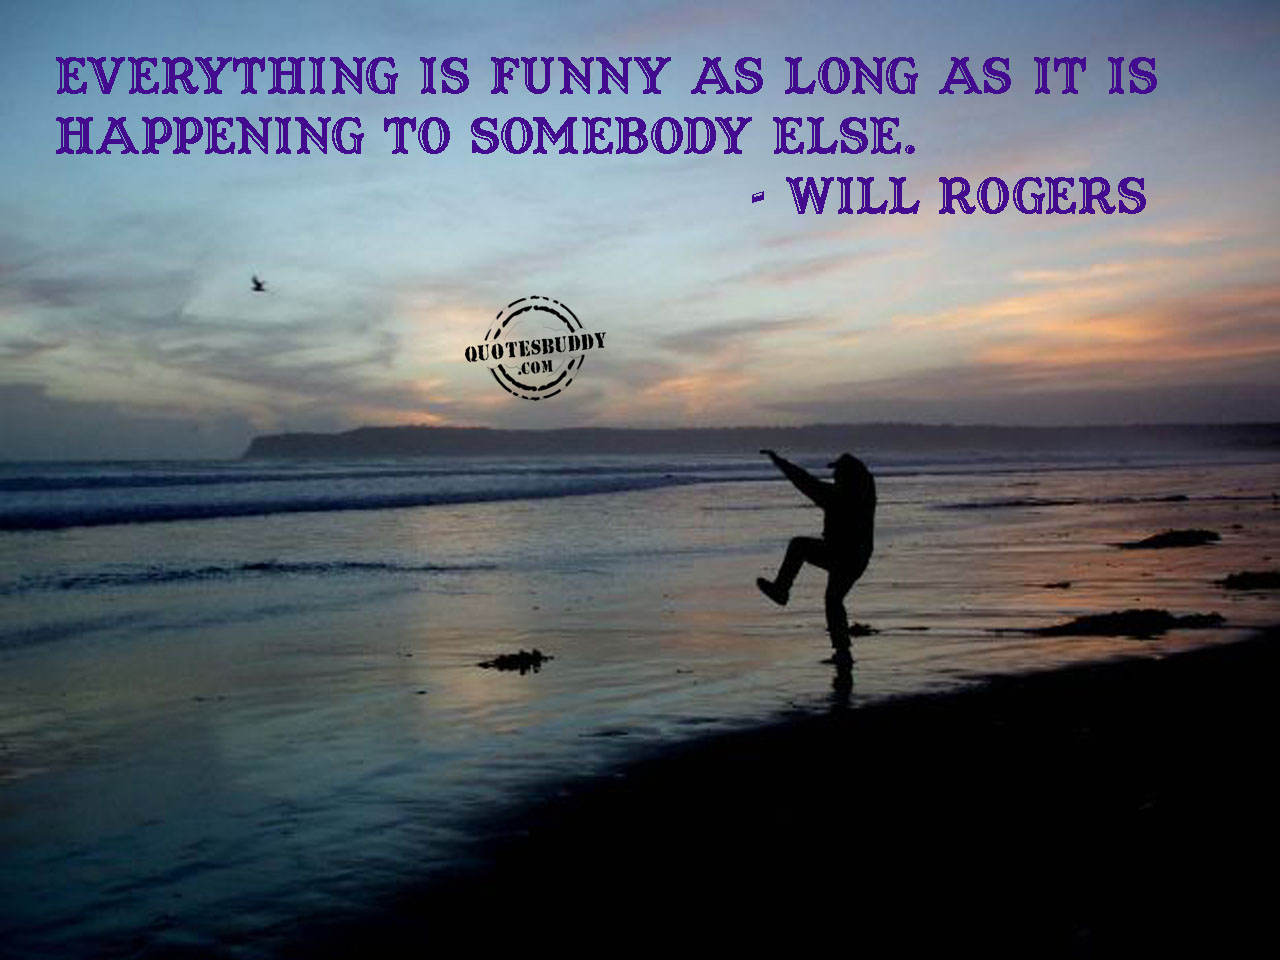 Everything Is Funny As Long as it Is Happening To Somebody Else ~ April Fool Quote